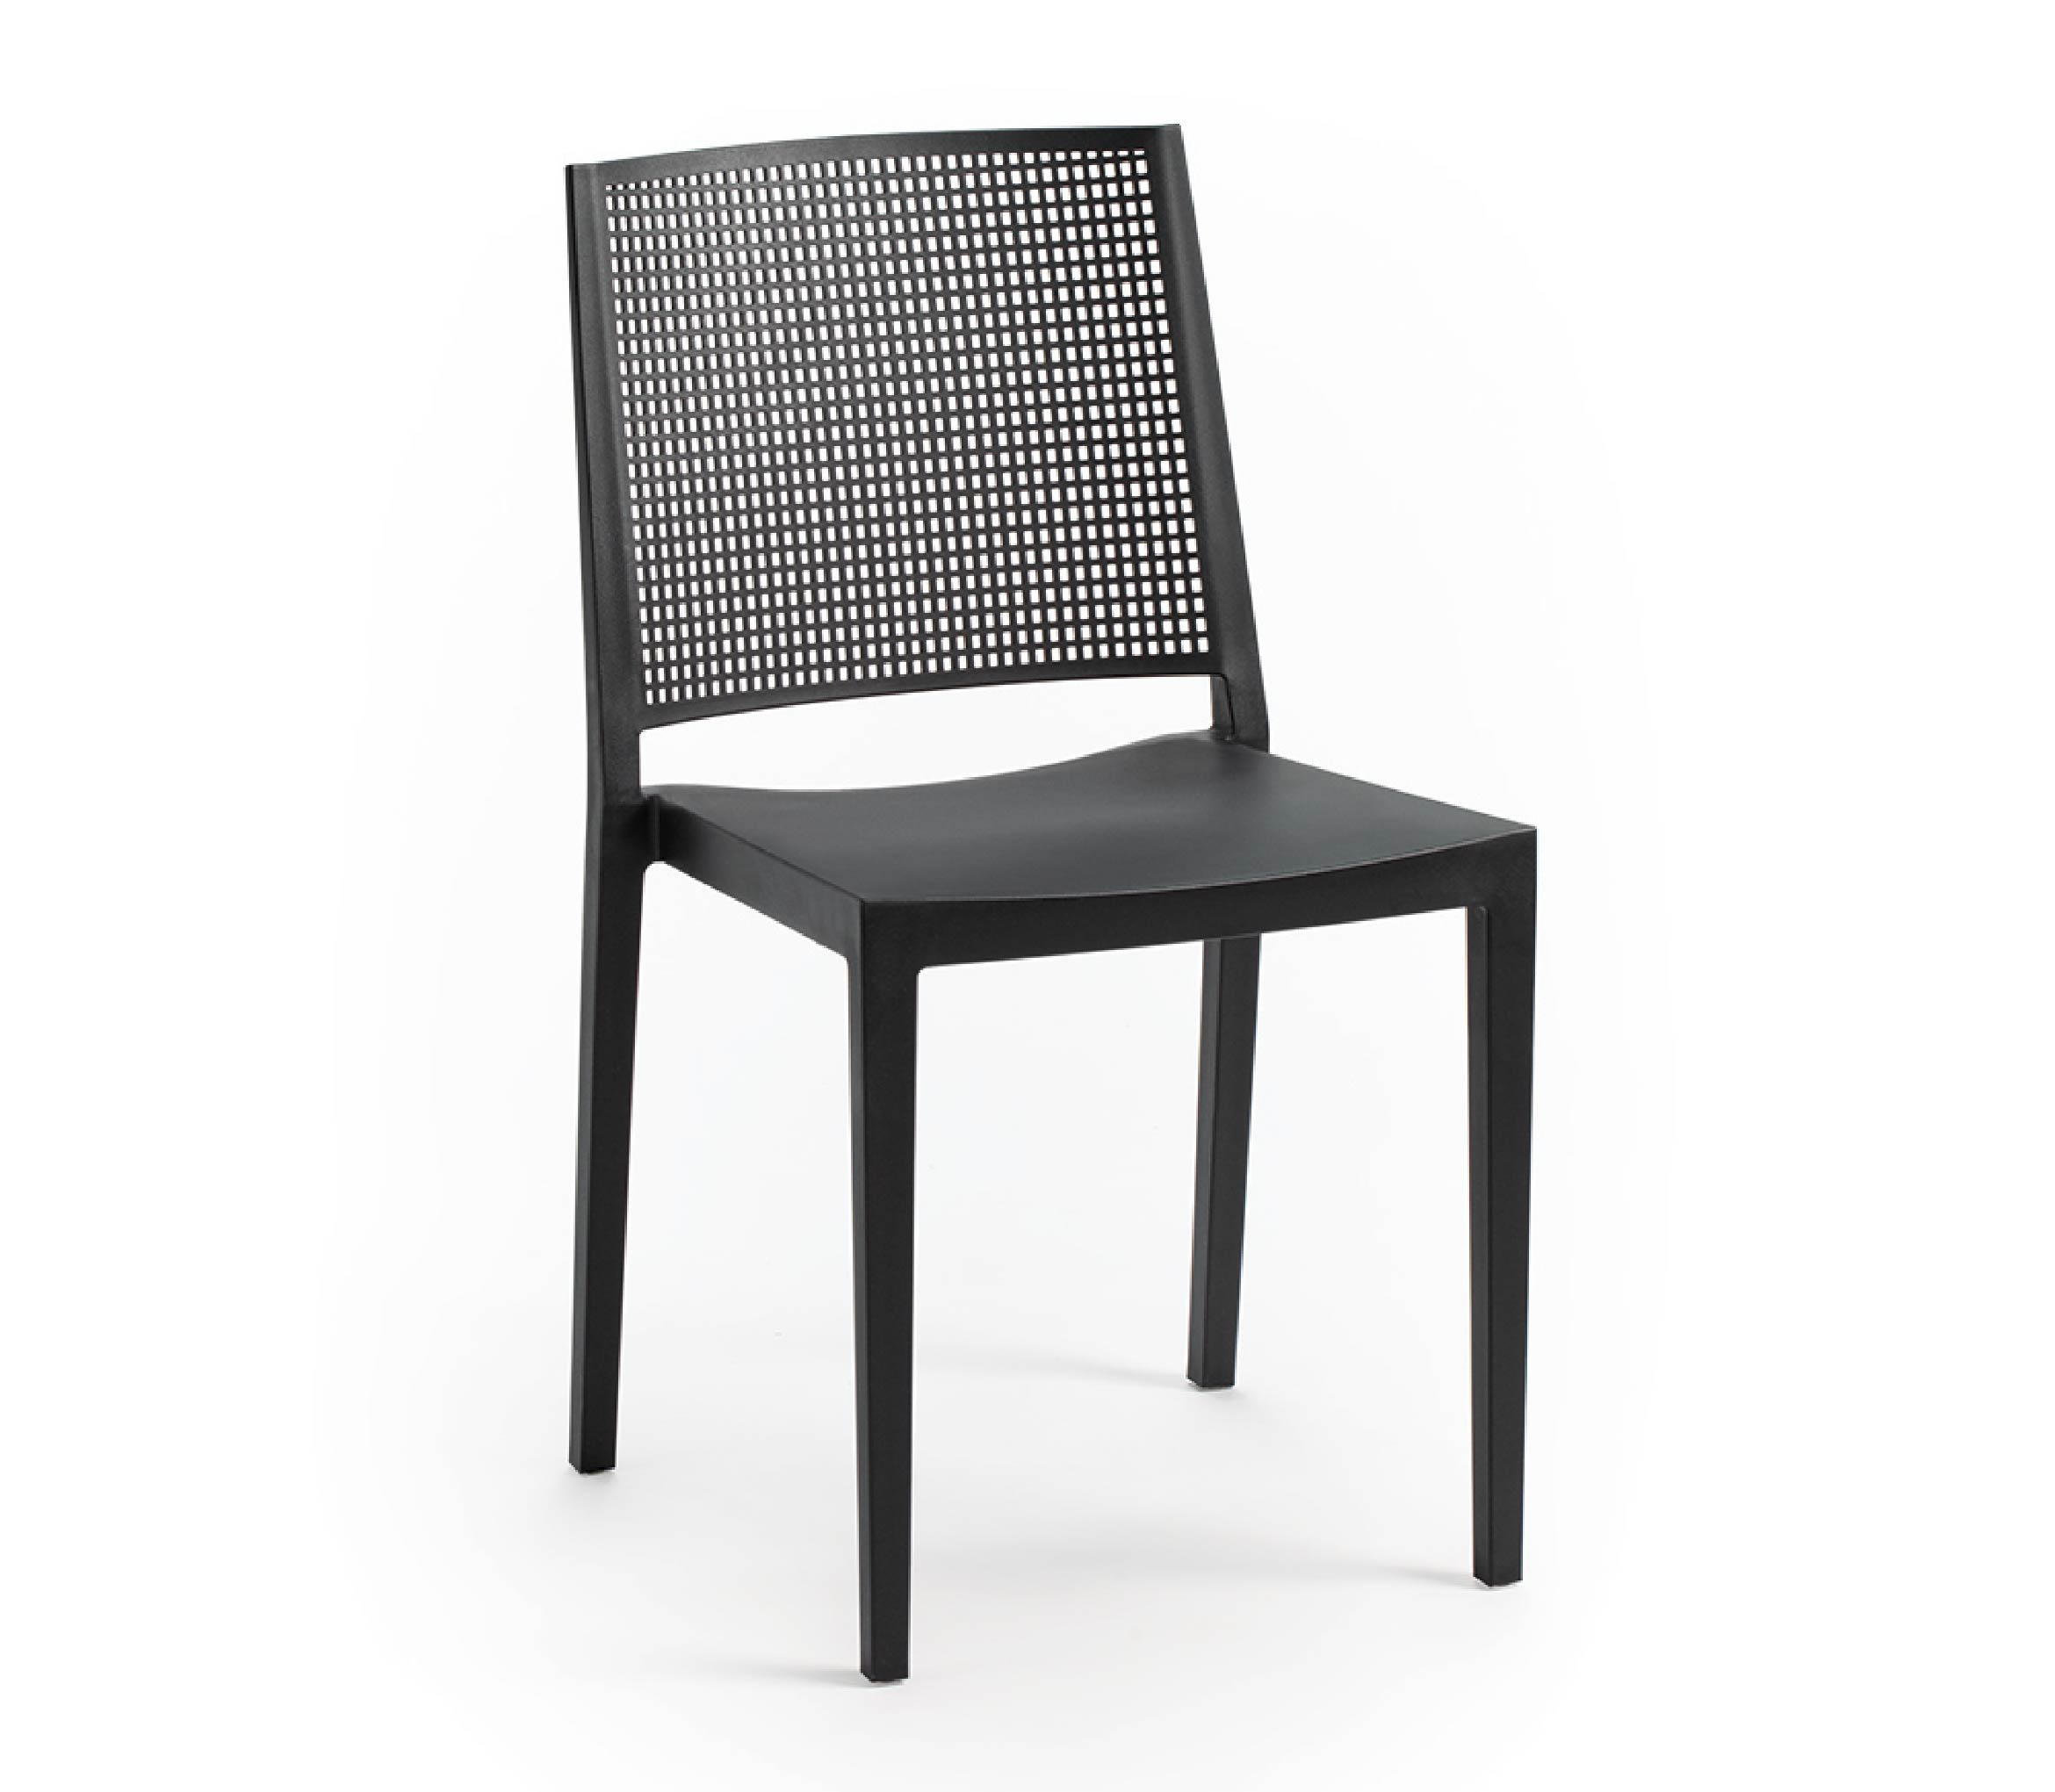 TENSAI_FURNITURE_GRID_PLASTIC_black_chair_color_white_background__900_001